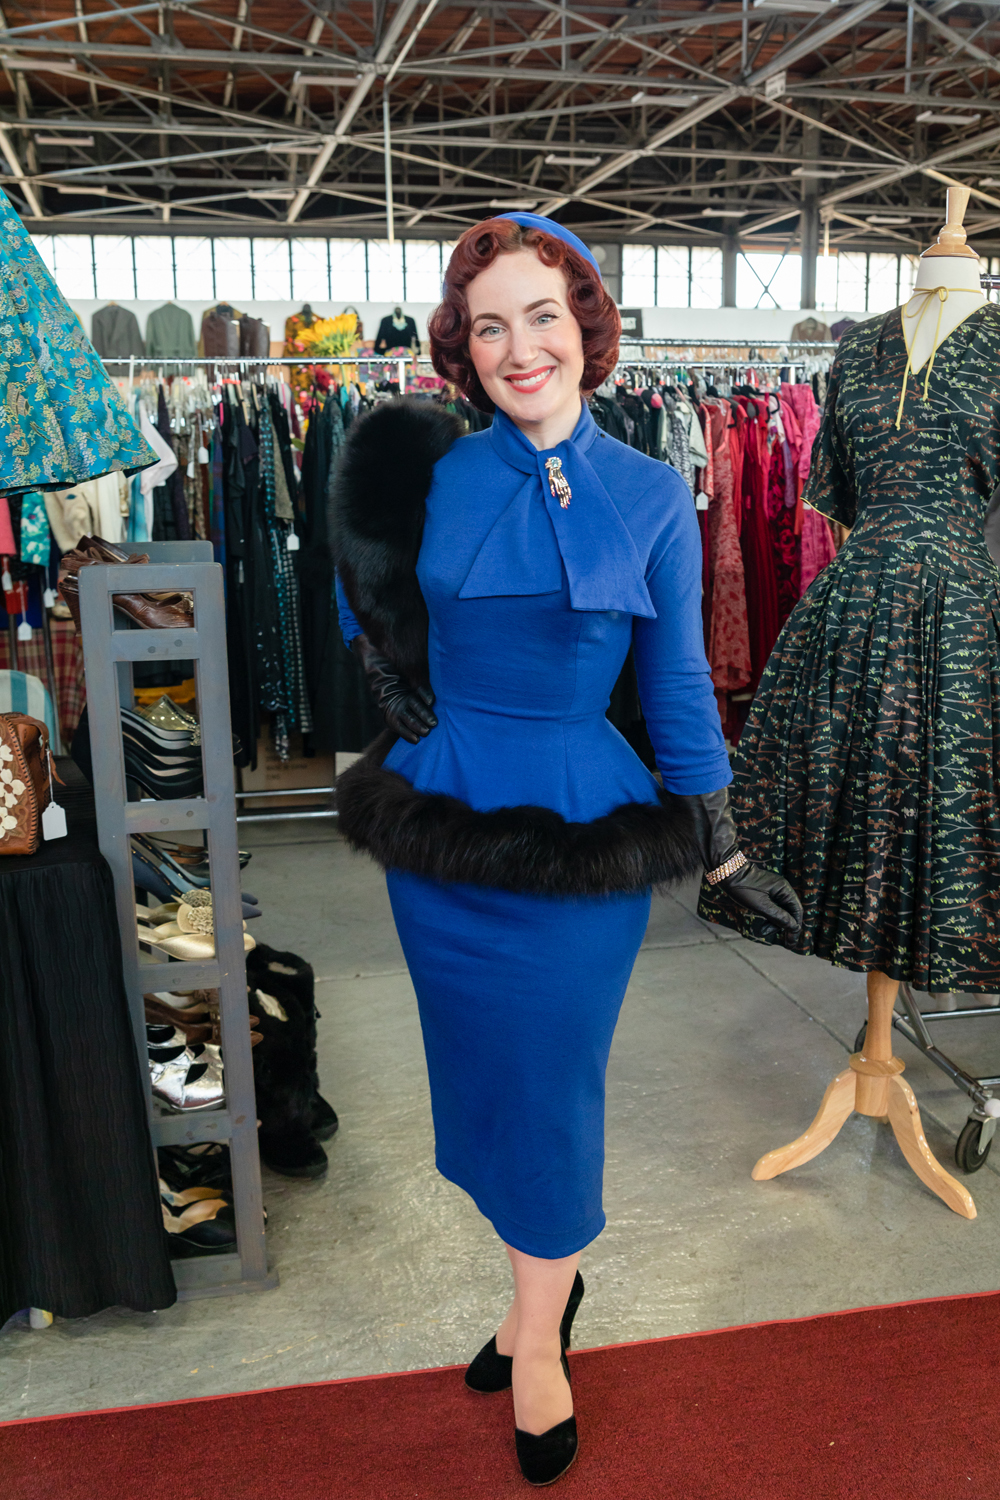 DAISY_COBY_2018_ALAMEDA_VINATAGE_FASHION_FAIRE_0818Resized.jpg